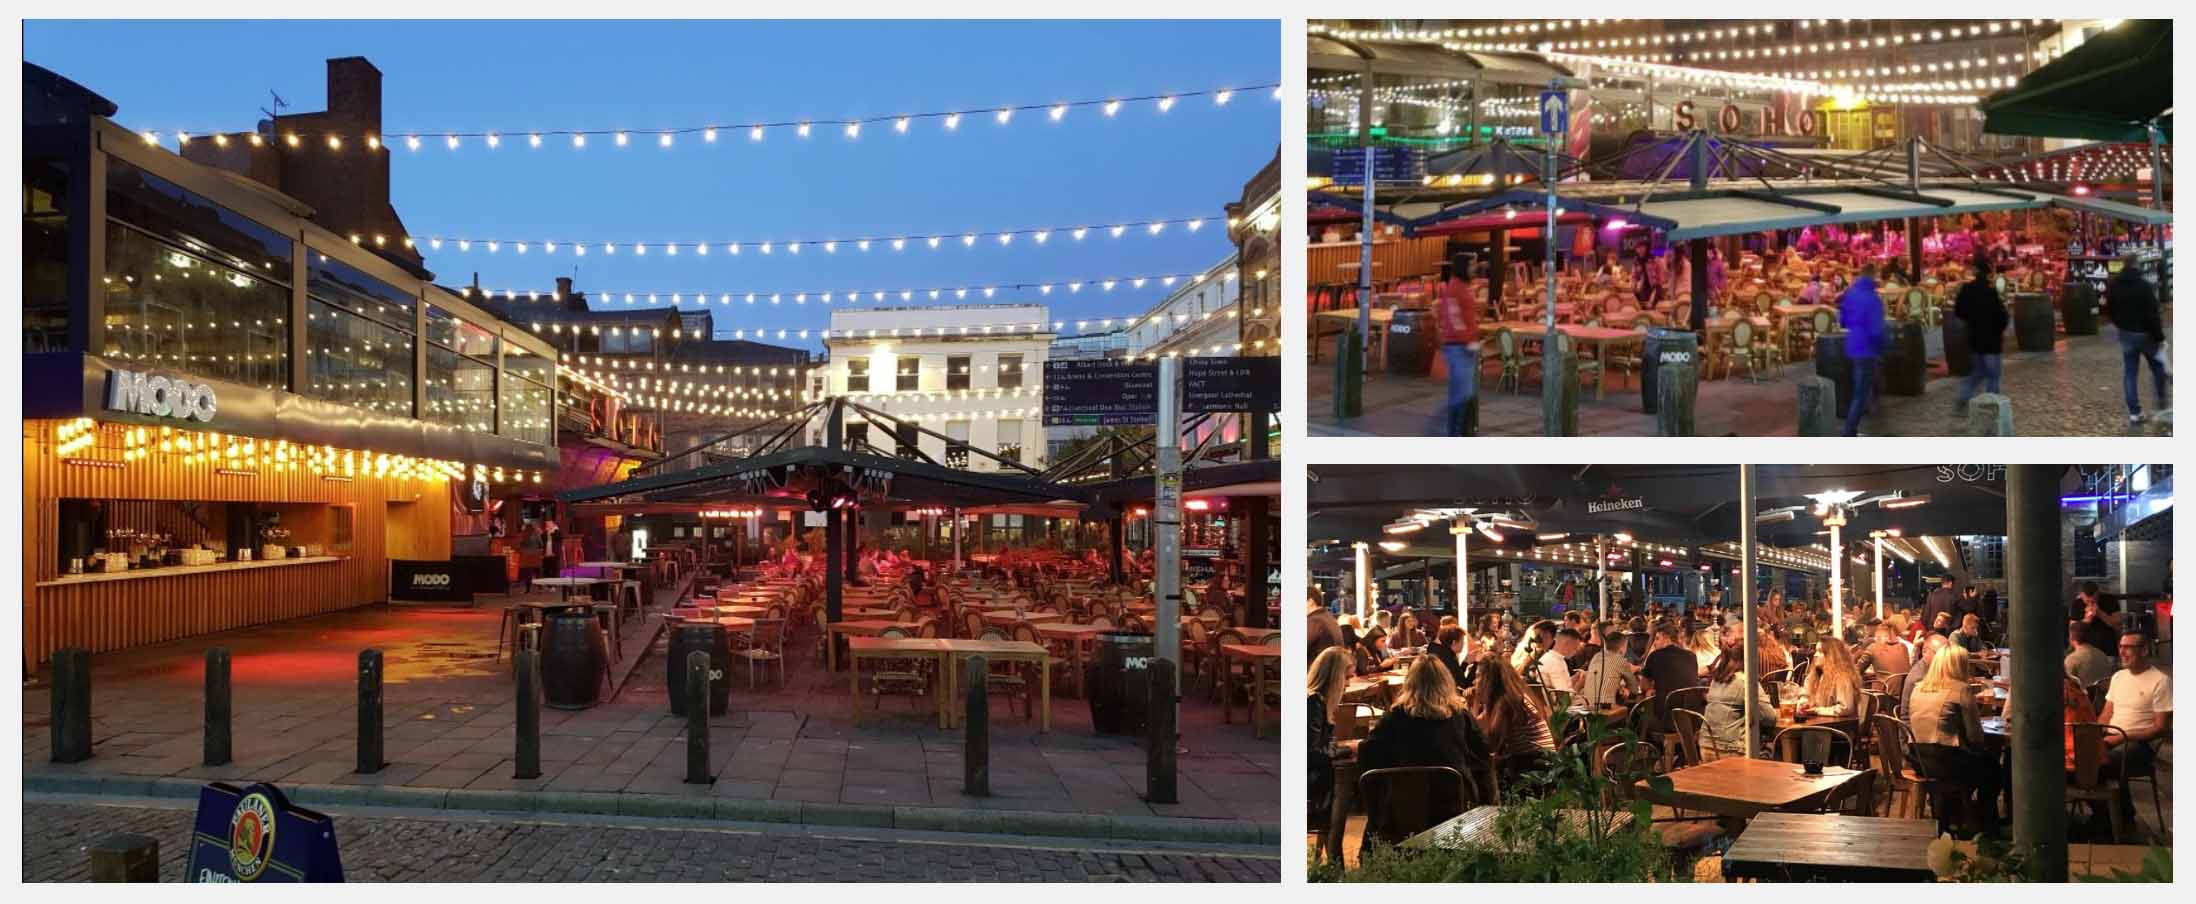 Best Beer Gardens in Liverpool - Concert Square